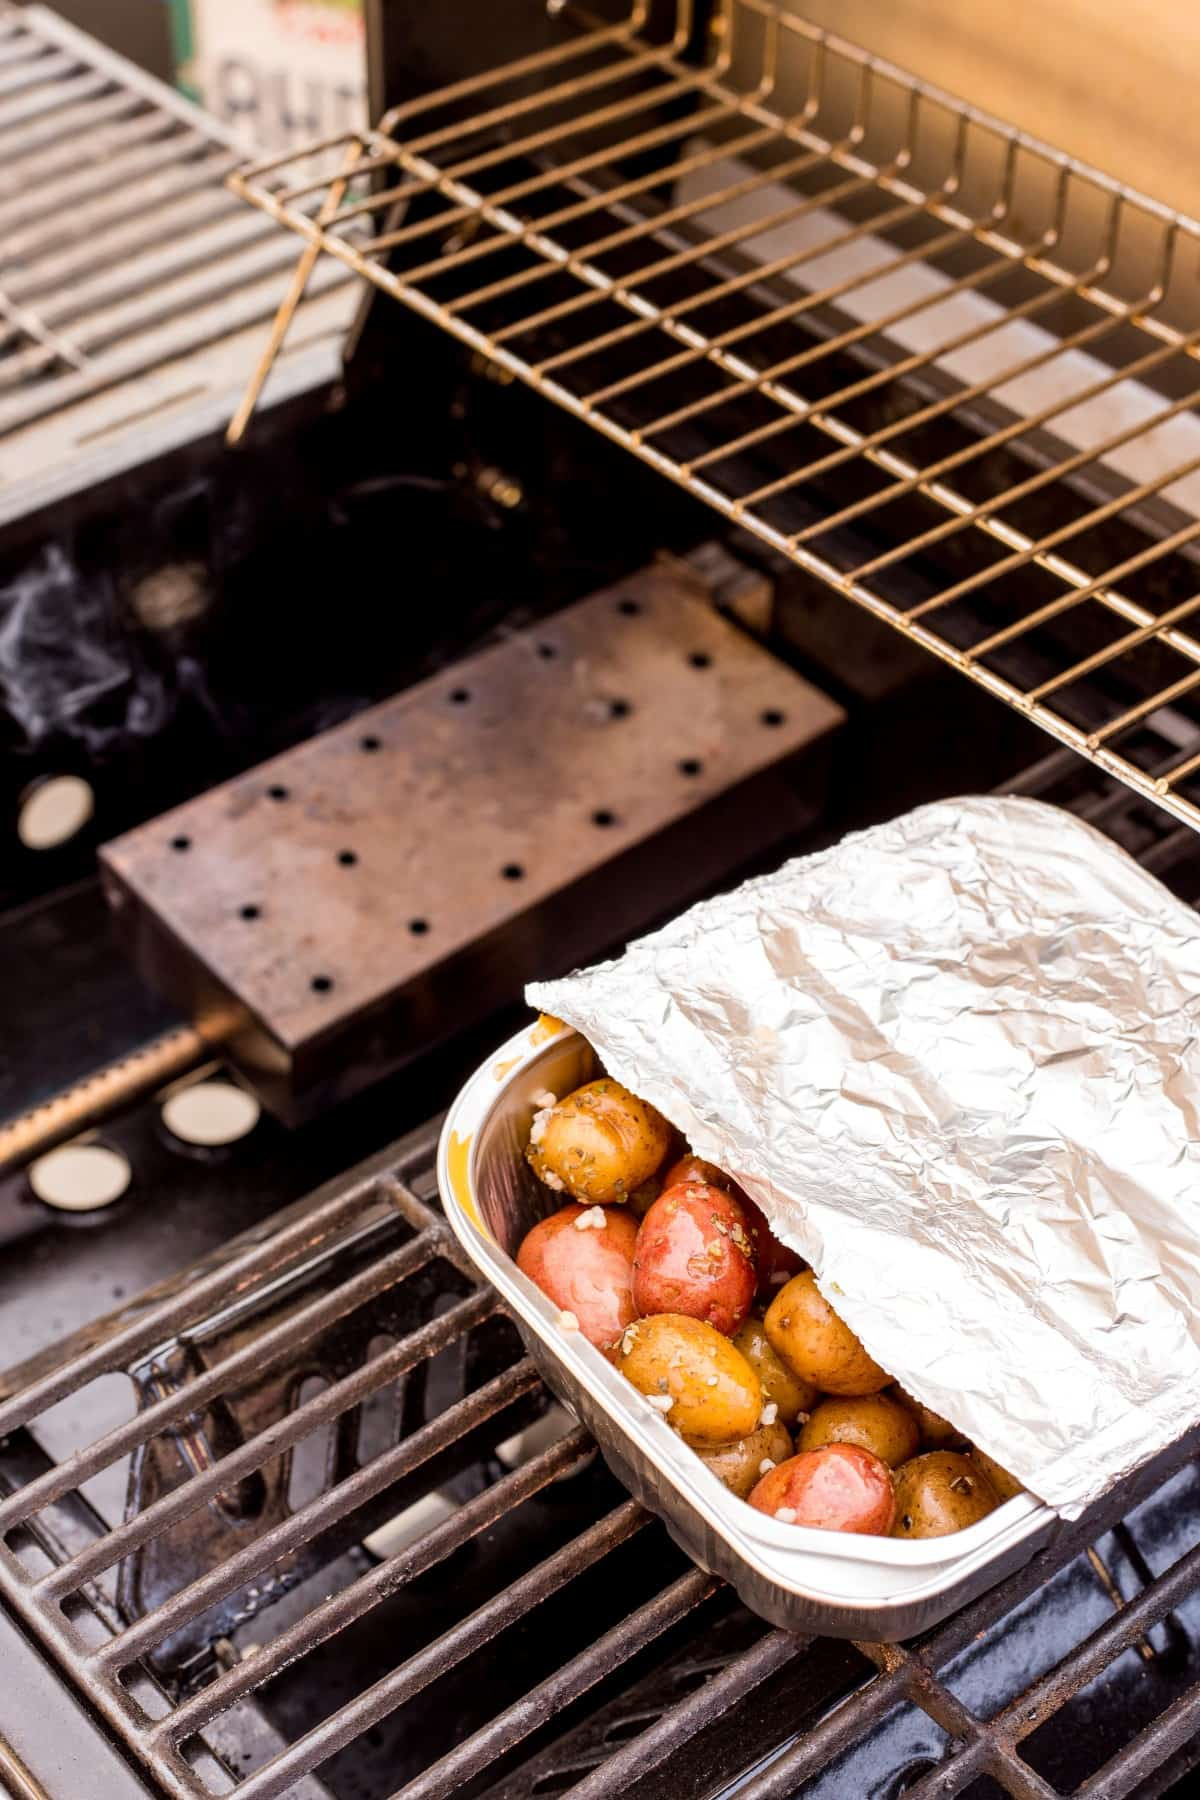 Potatoes in a pan partially covered in foil on the grill.